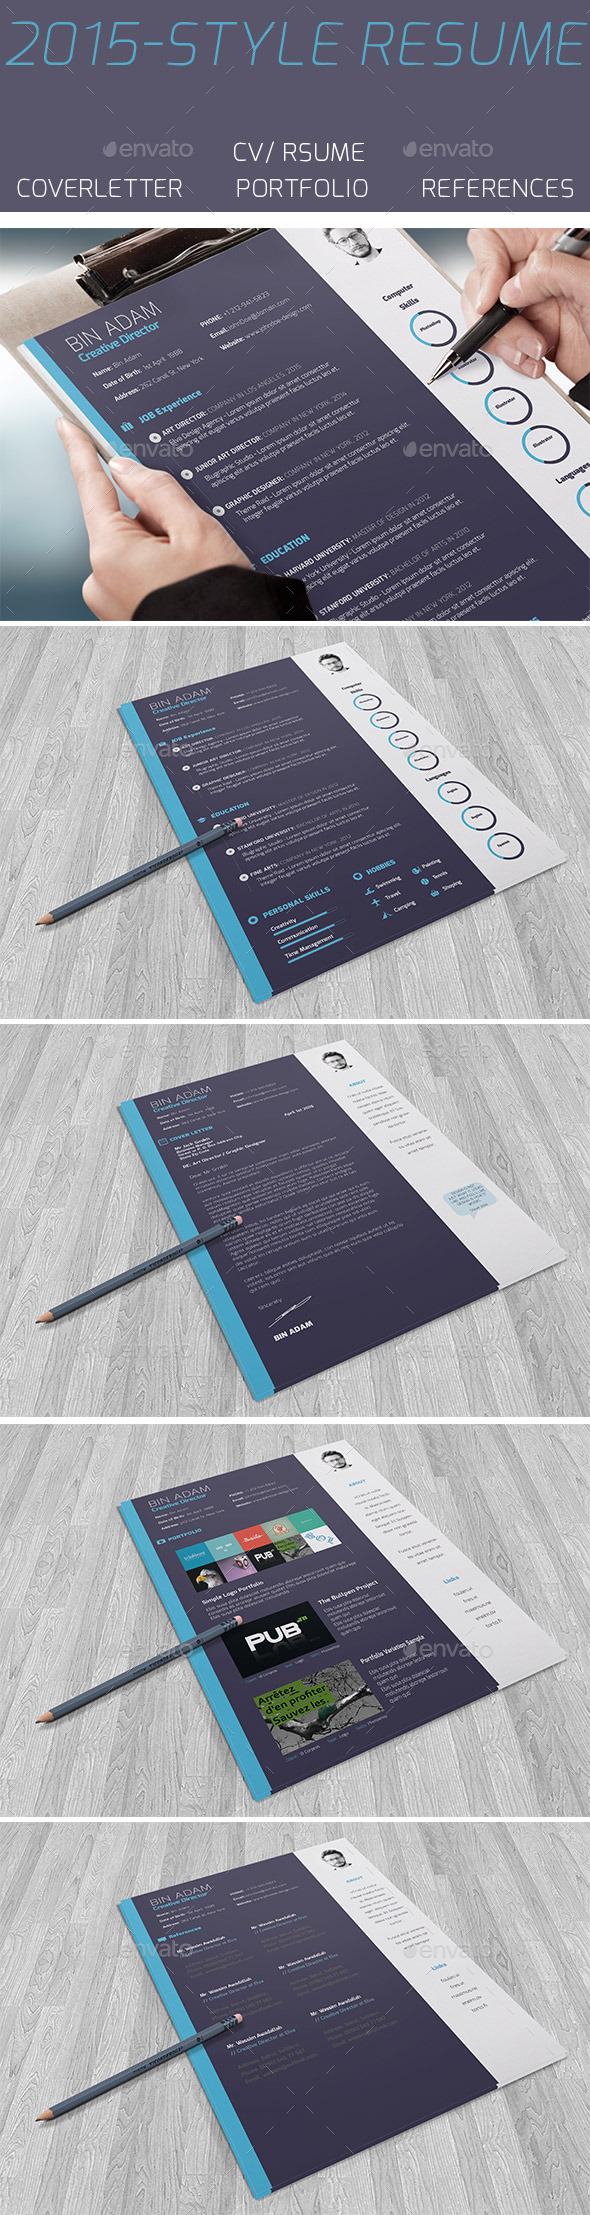 GraphicRiver 2015-Style Resume 10694128